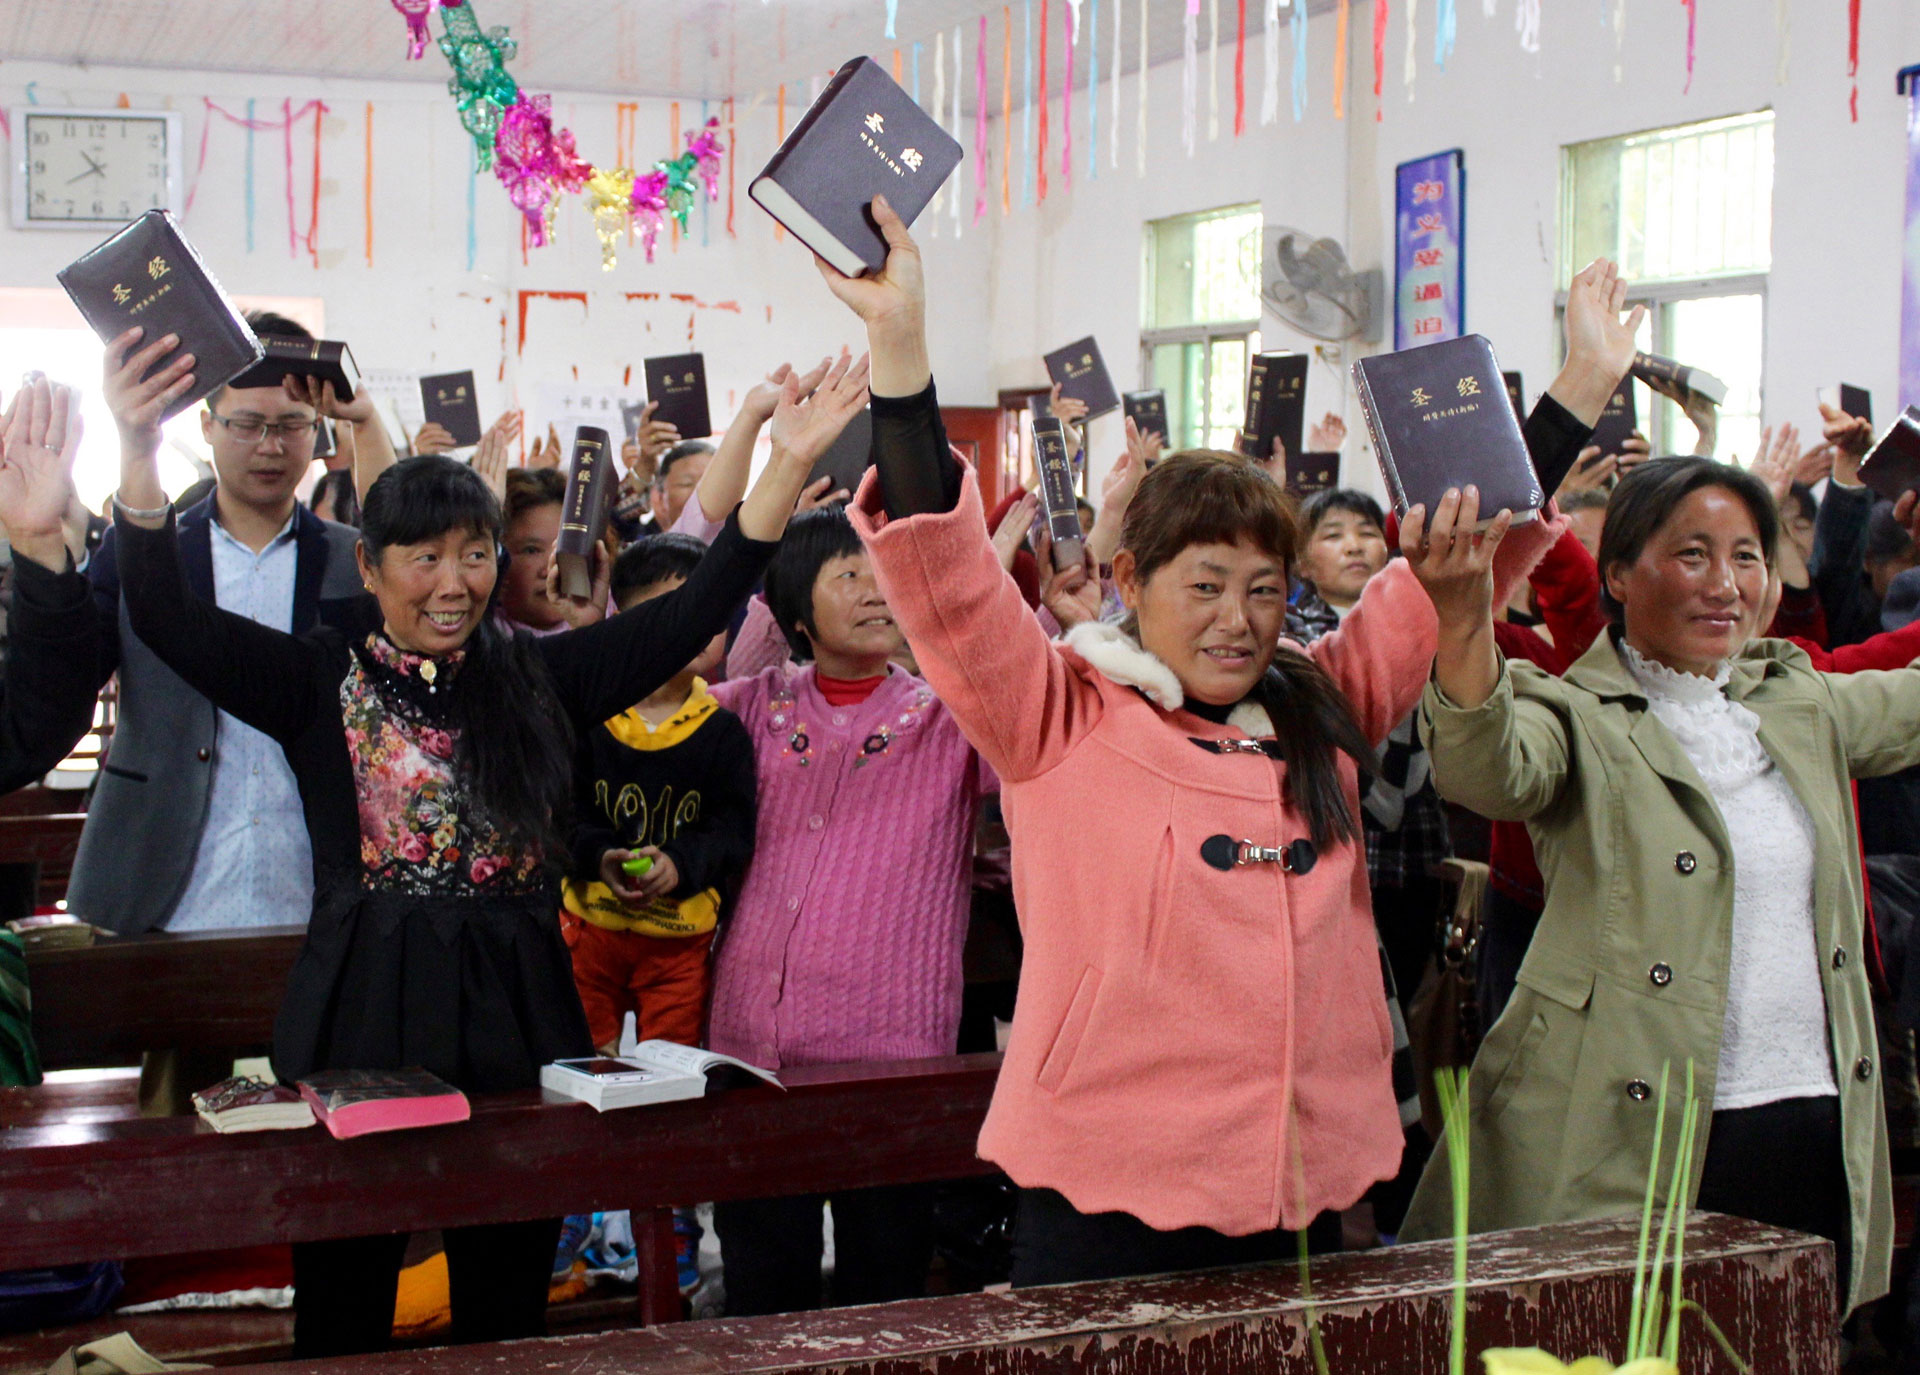 Bible distribution picks up as lockdown restrictions lift in China